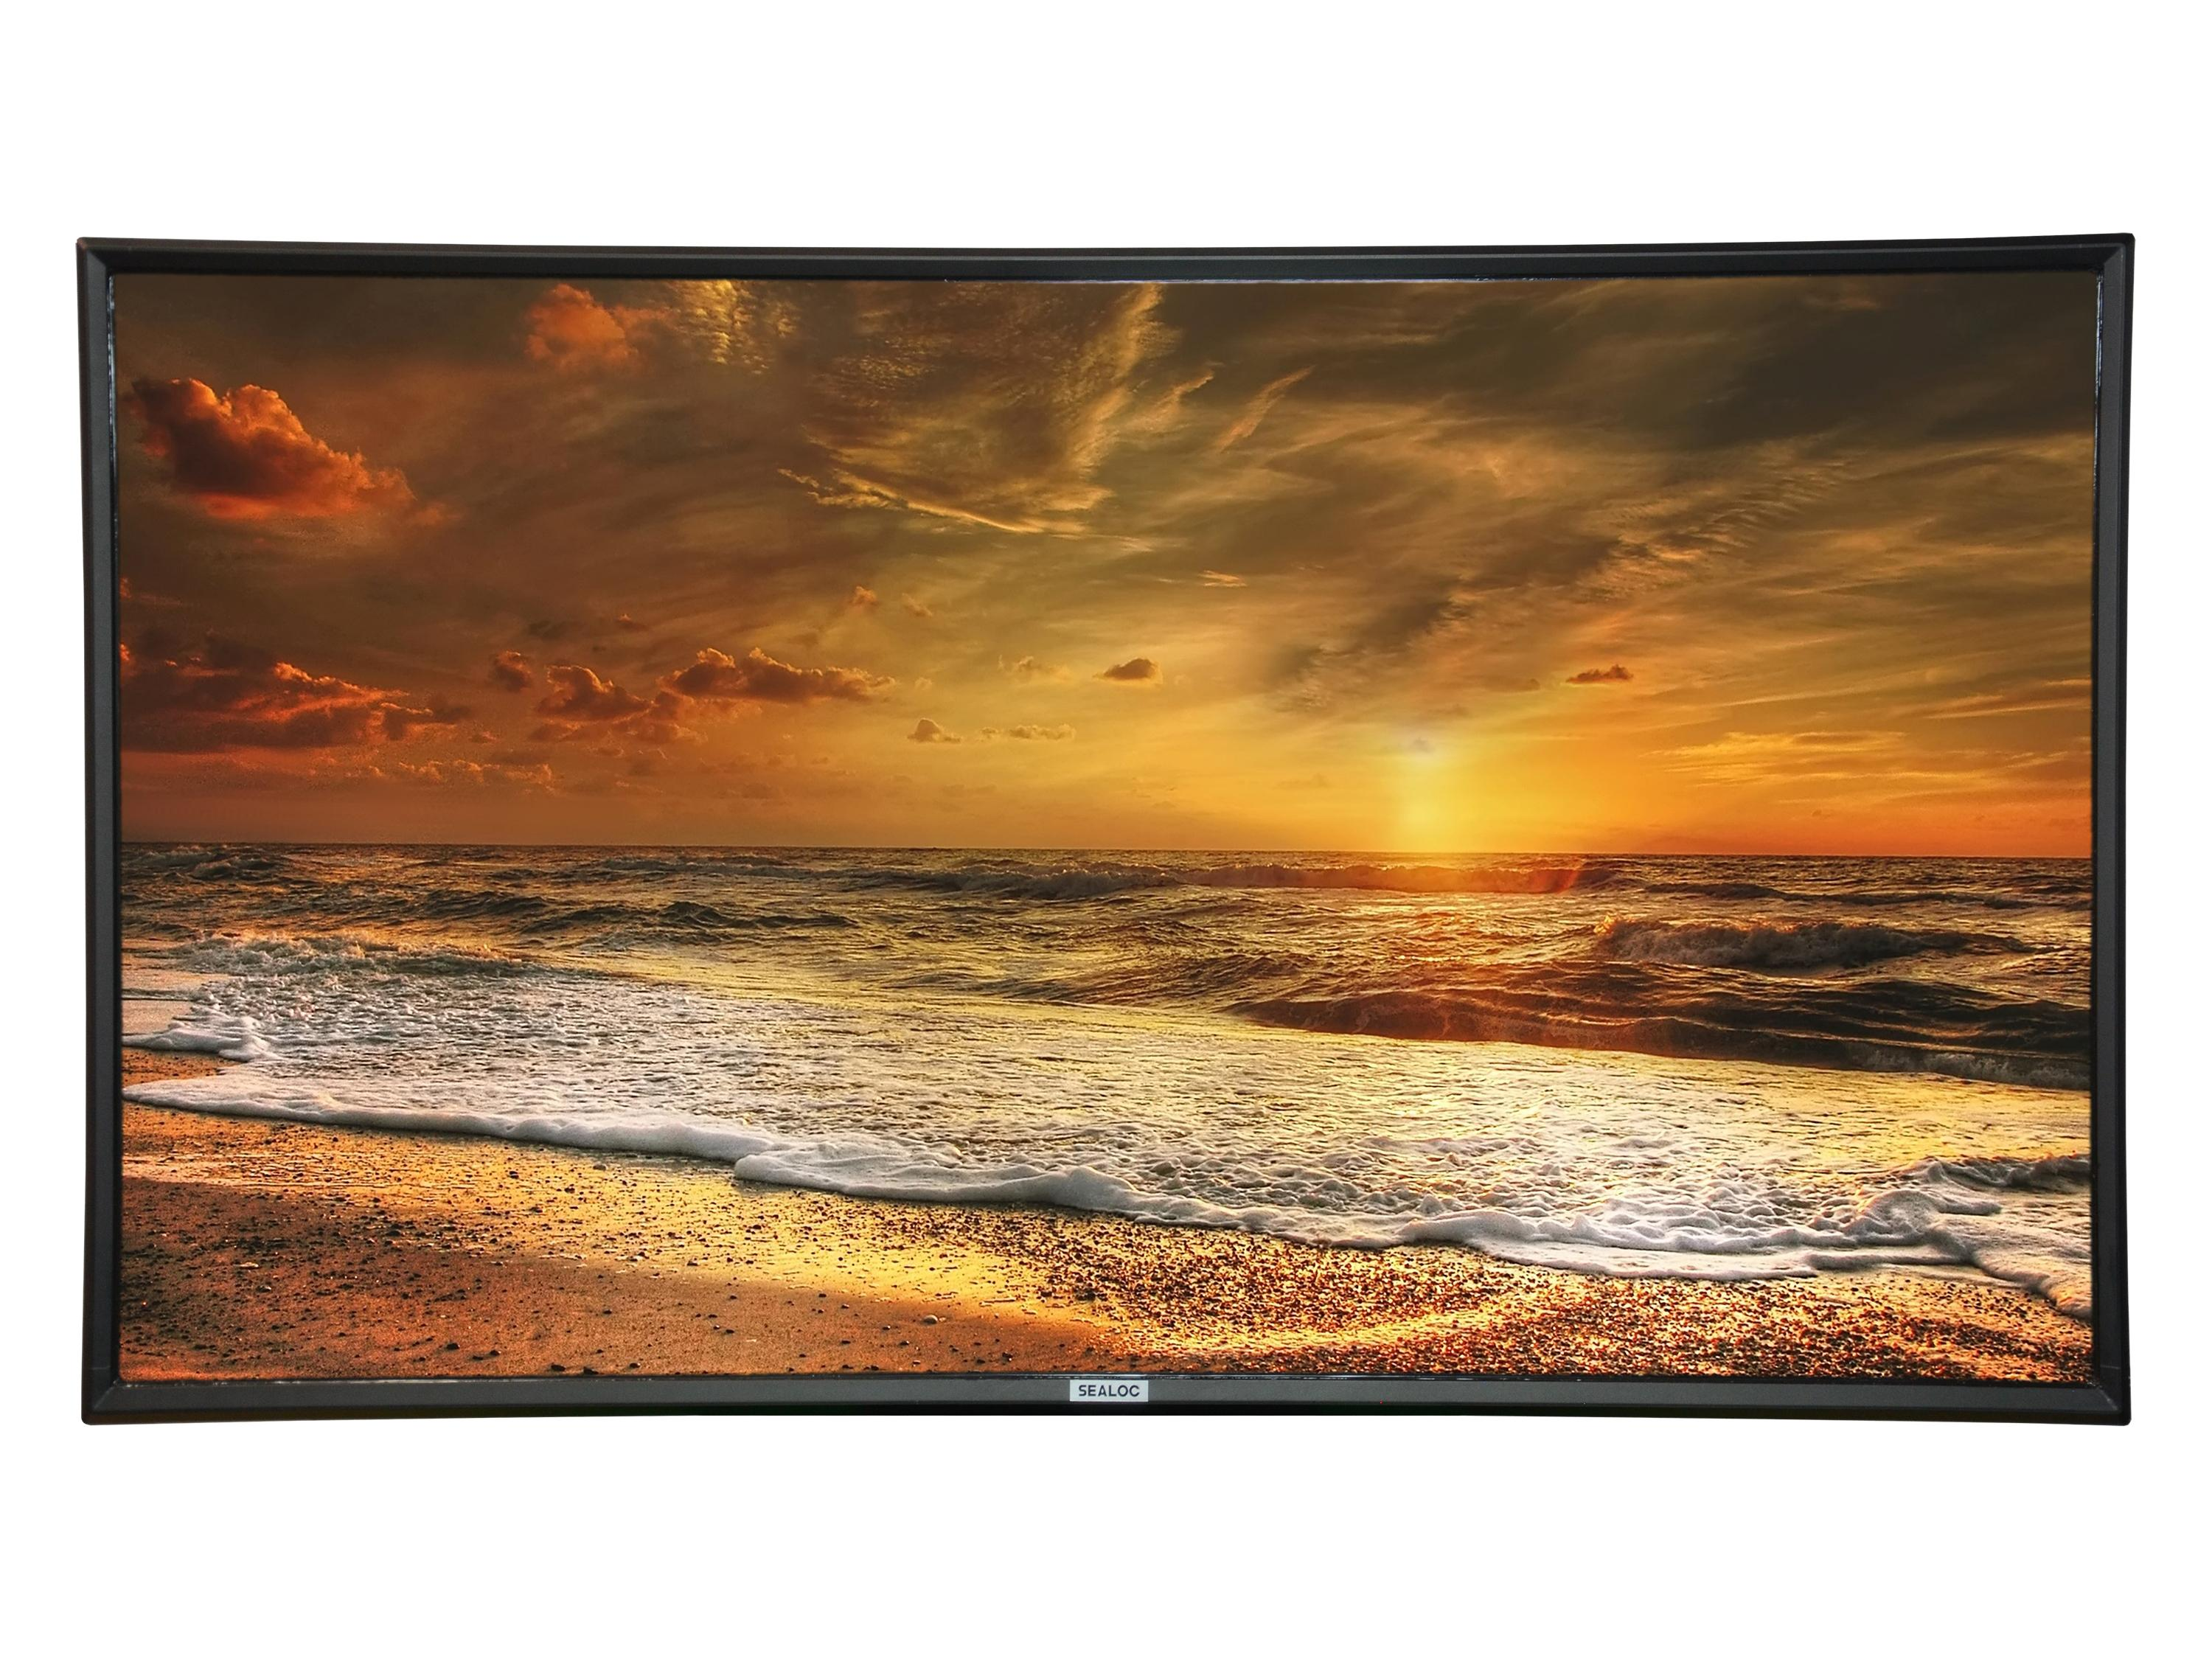 SEALOC 55CS 55 inch COASTAL SILVER Weatherproof Premium Outdoor 4K UHD Smart TV